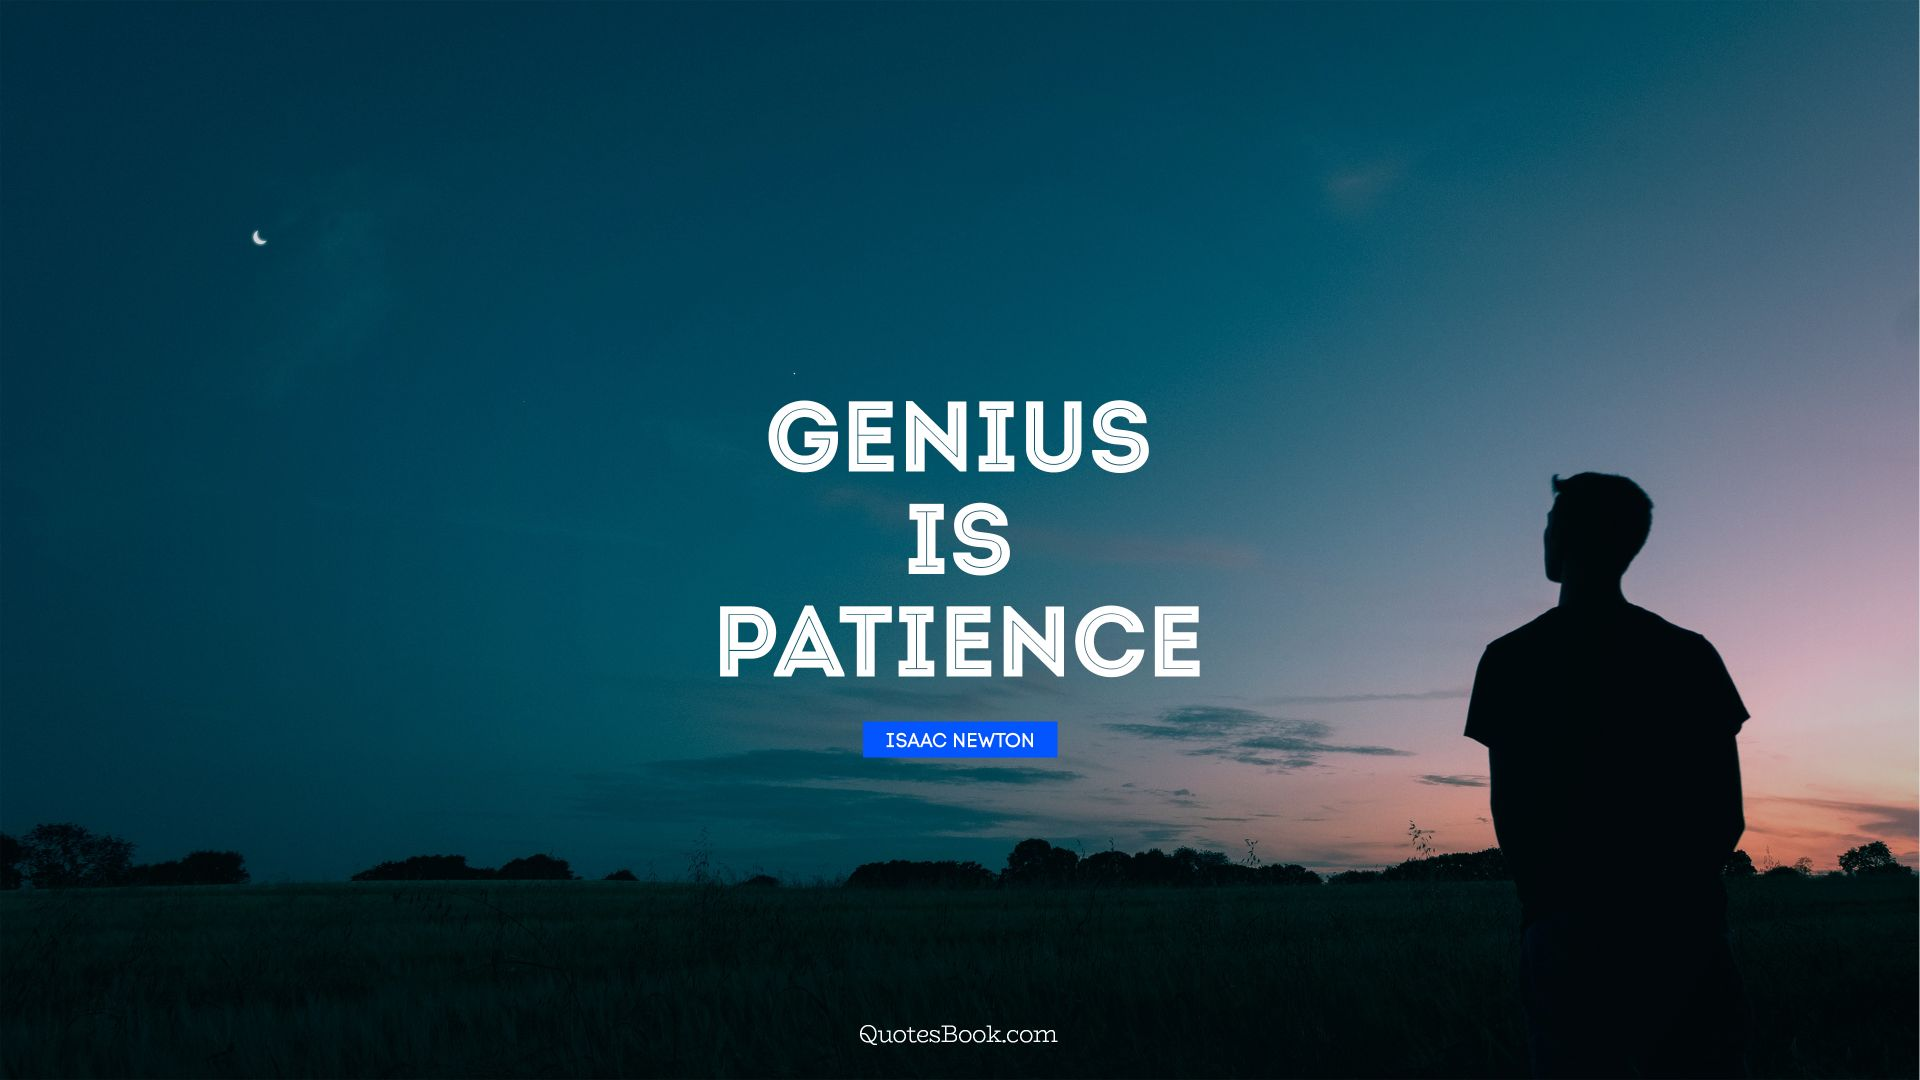 Genius is patience. - Quote by Isaac Newton